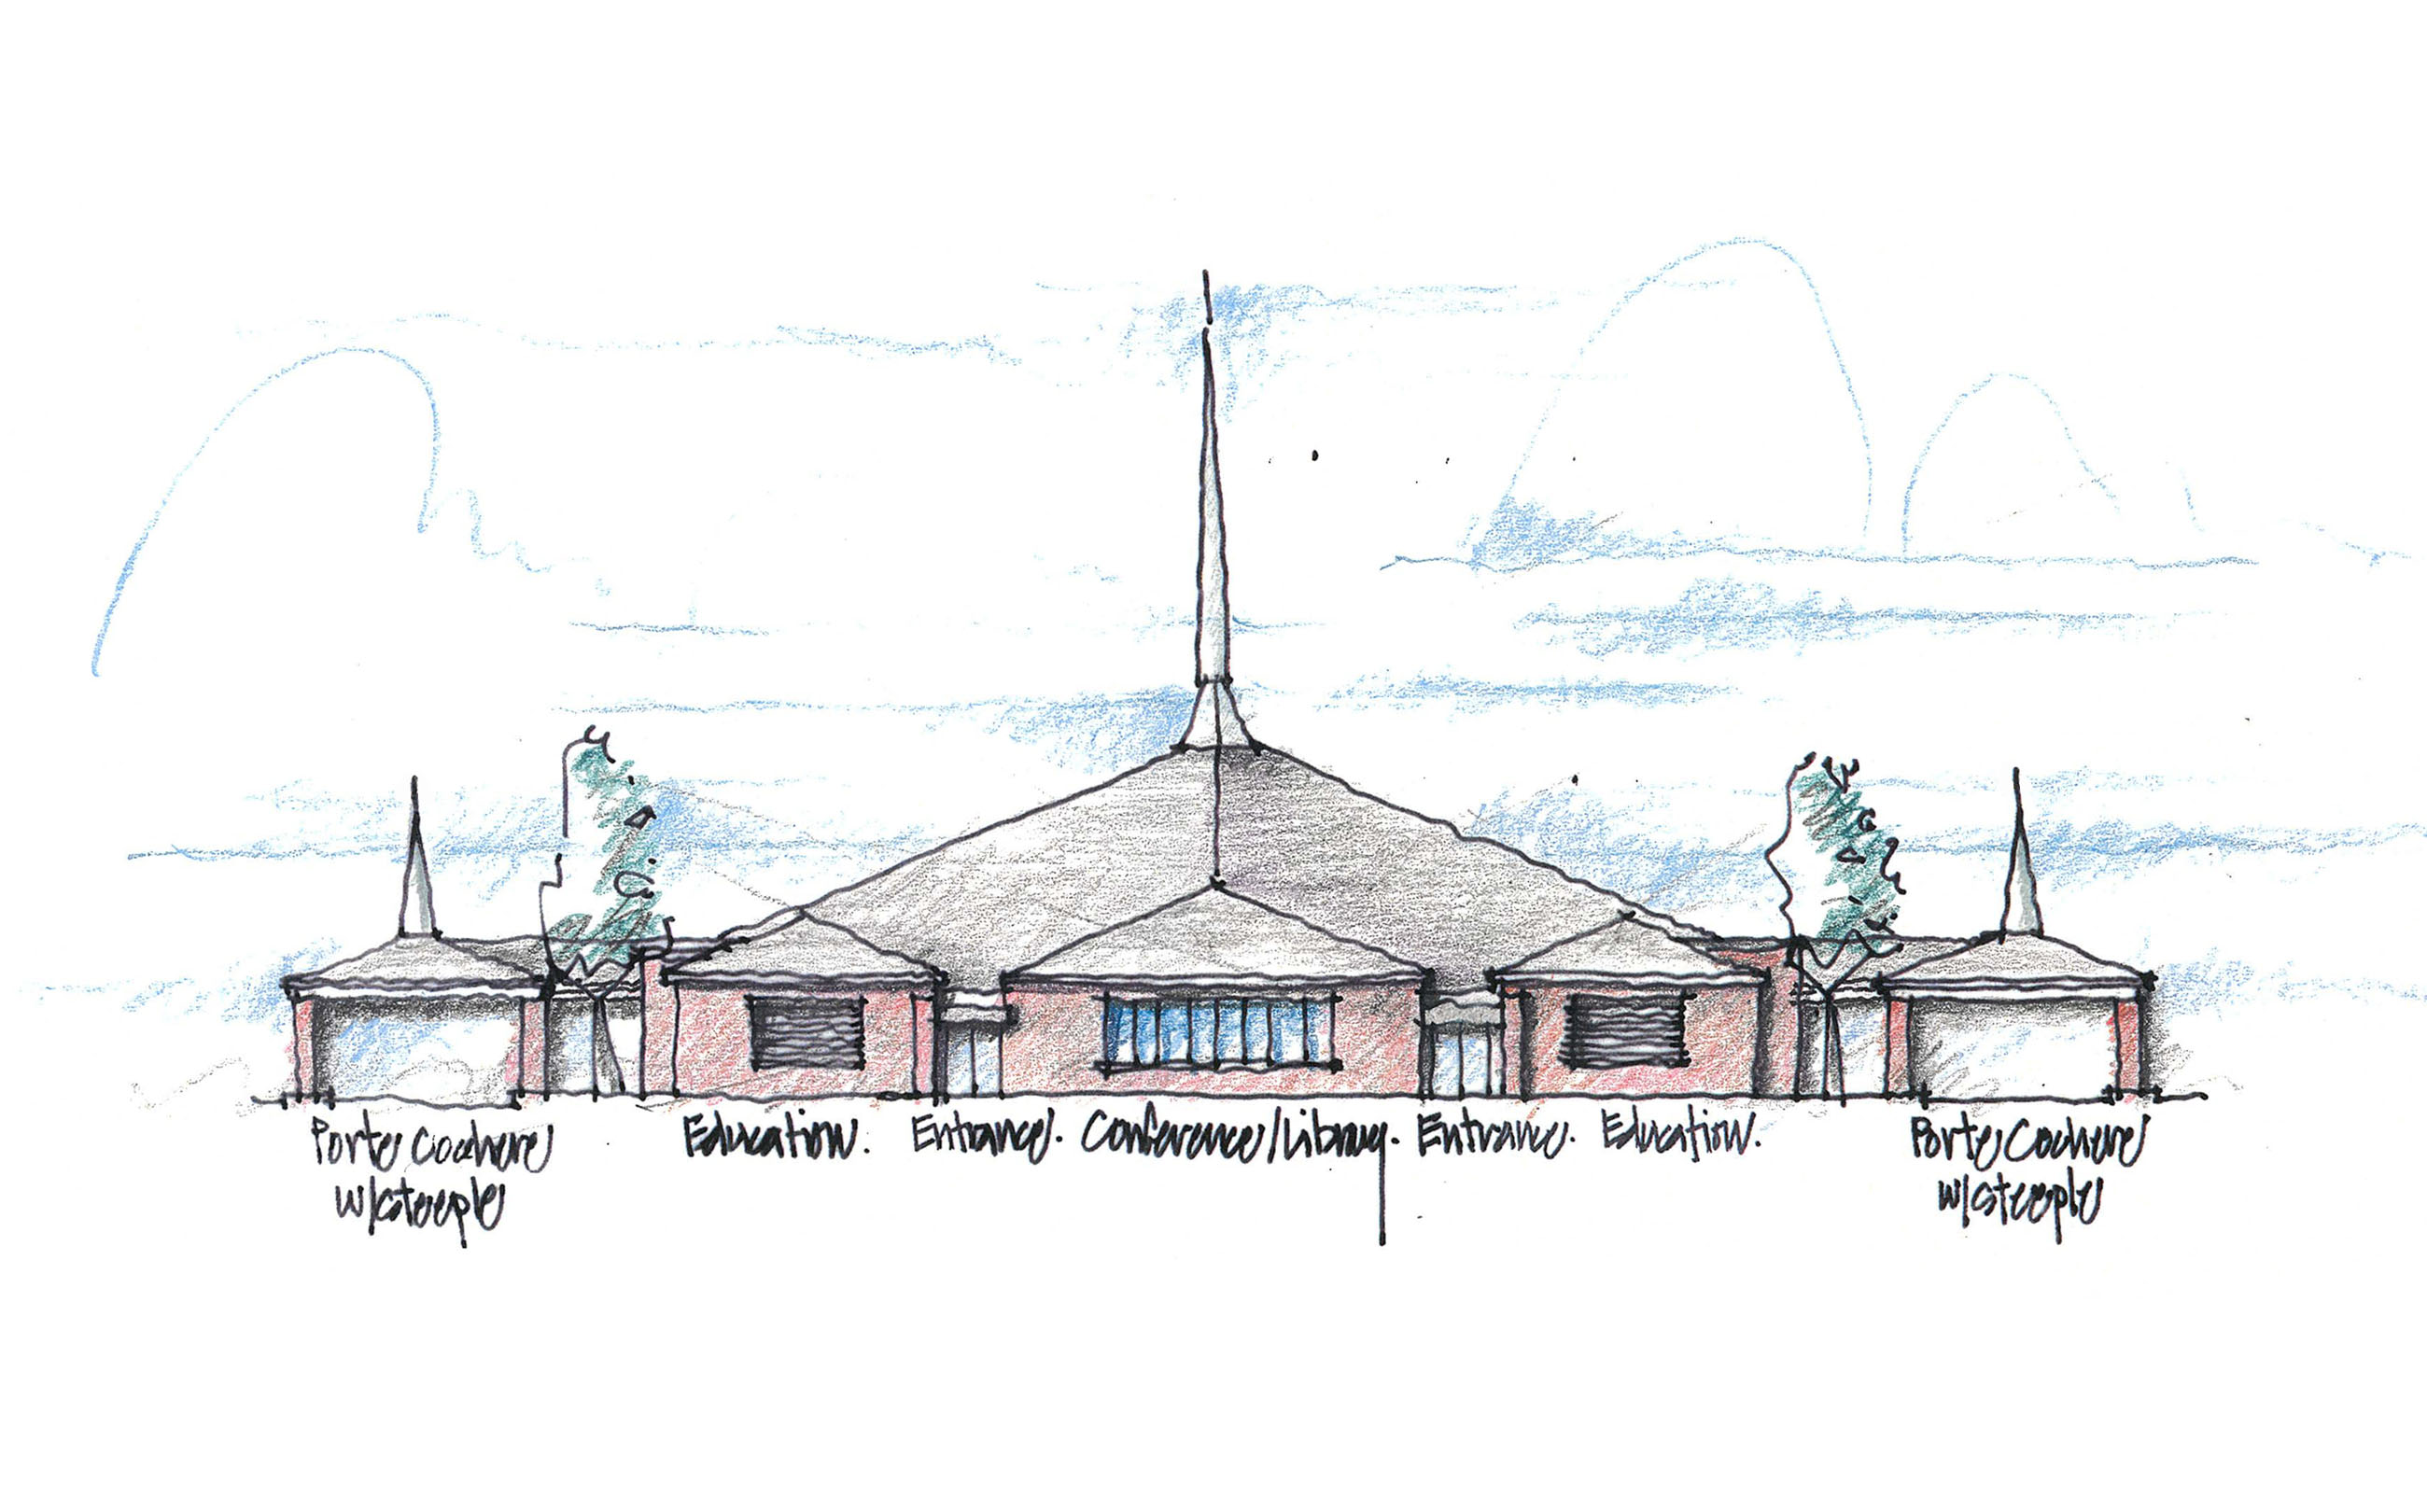 Cason Lane Church of Christ, Murfreesboro, TN, Tennessee, architecture, design, concept, worship, religious, new renovation, drawings, models,